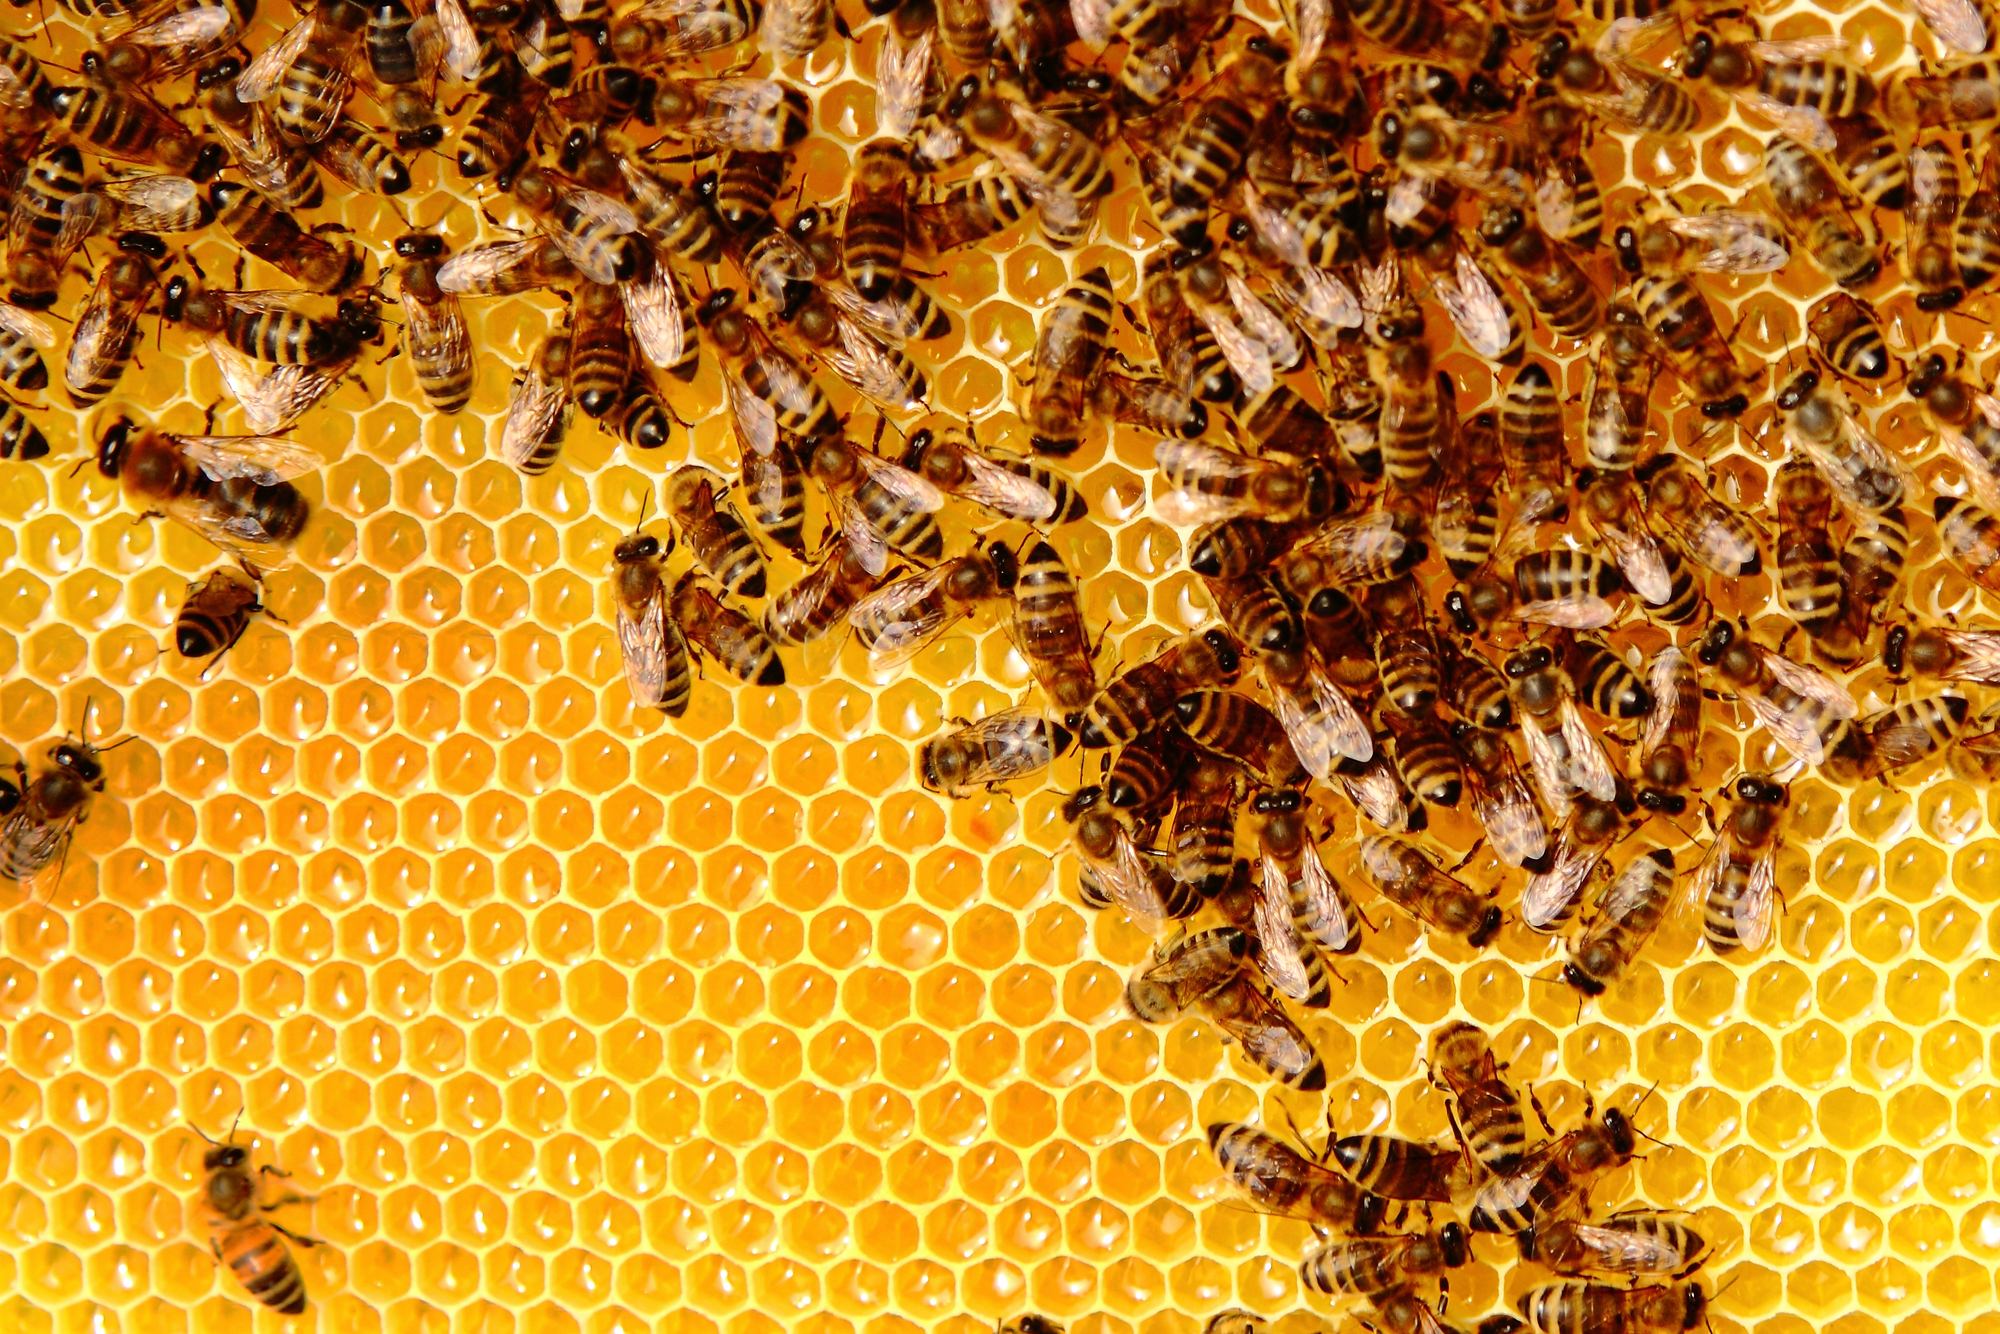 Royal Jelly and Stem Cells